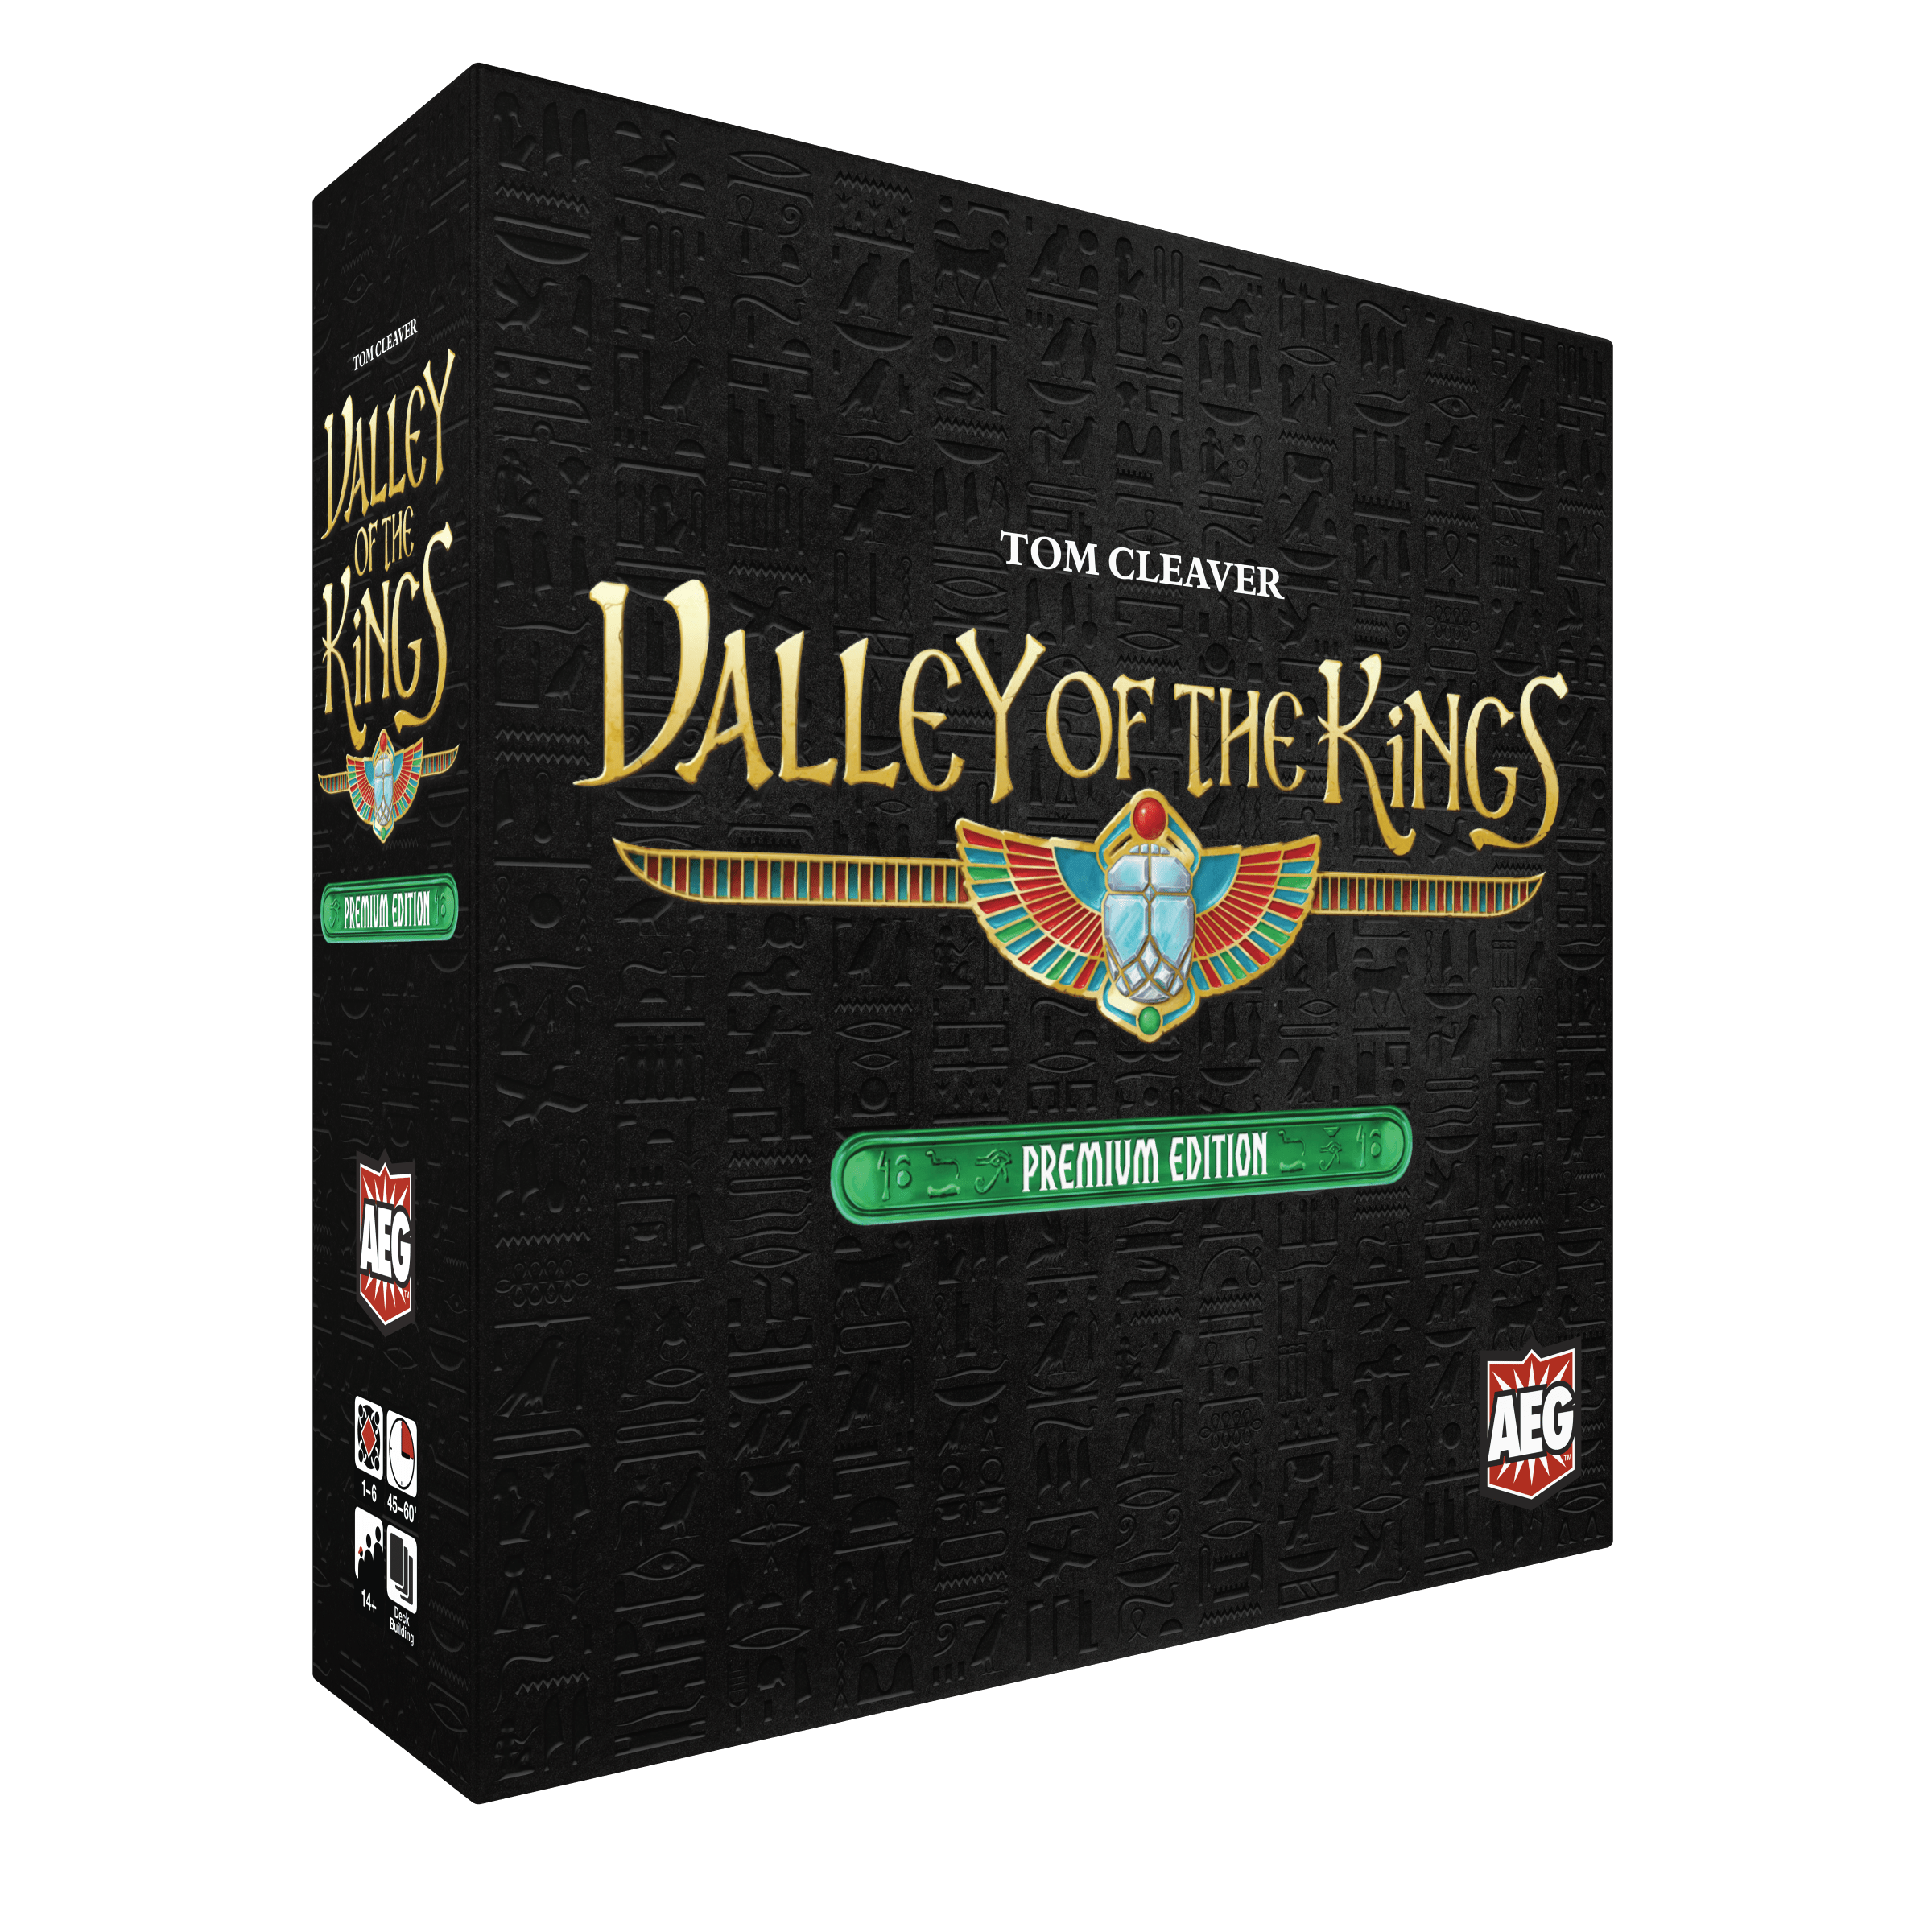 Valley of the Kings Premium Edition -  Alderac Entertaiment Group